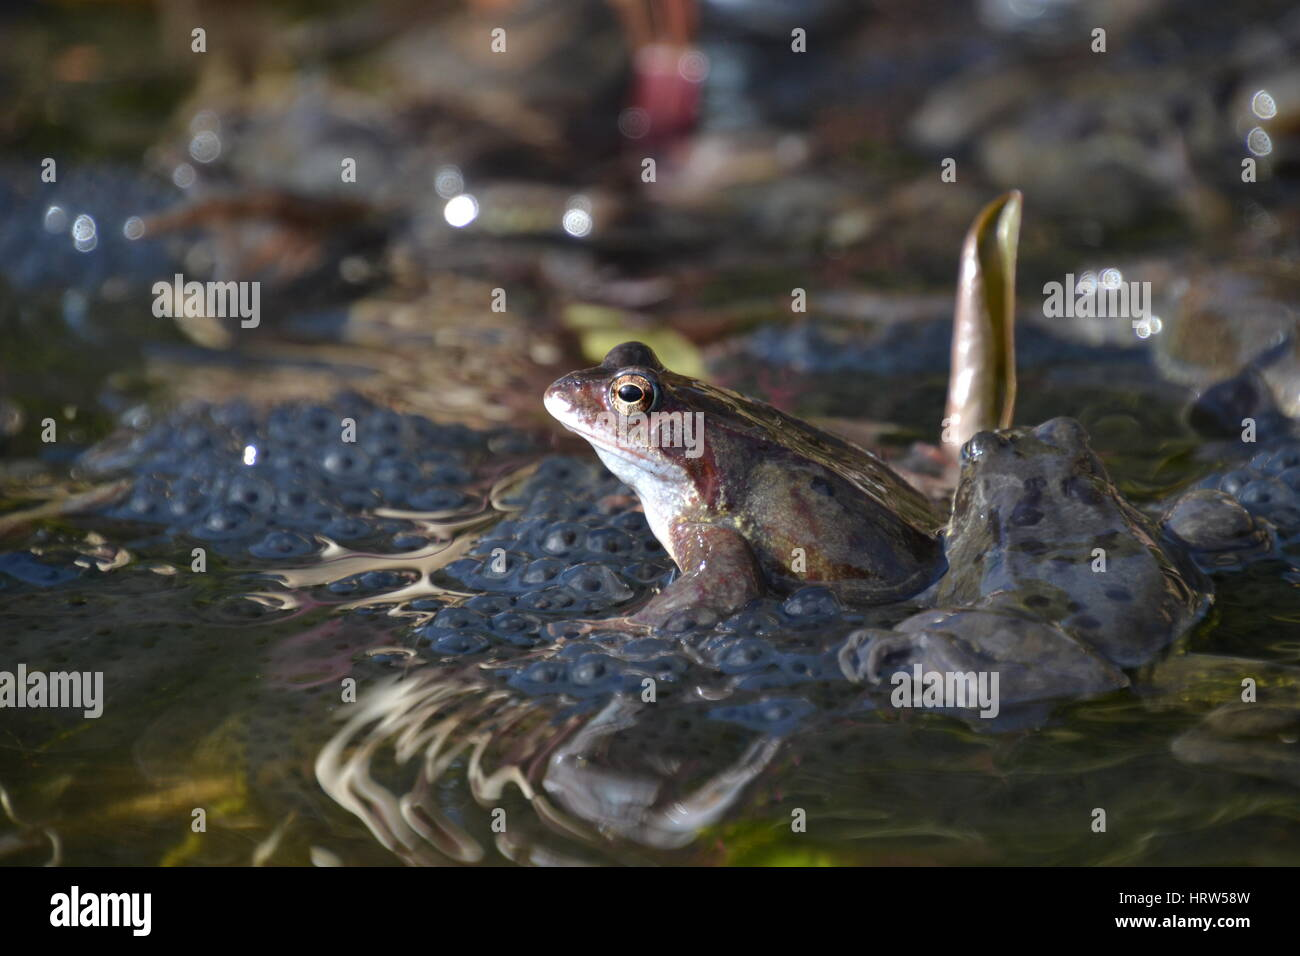 Common frogs in a garden pond, England - Stock Image